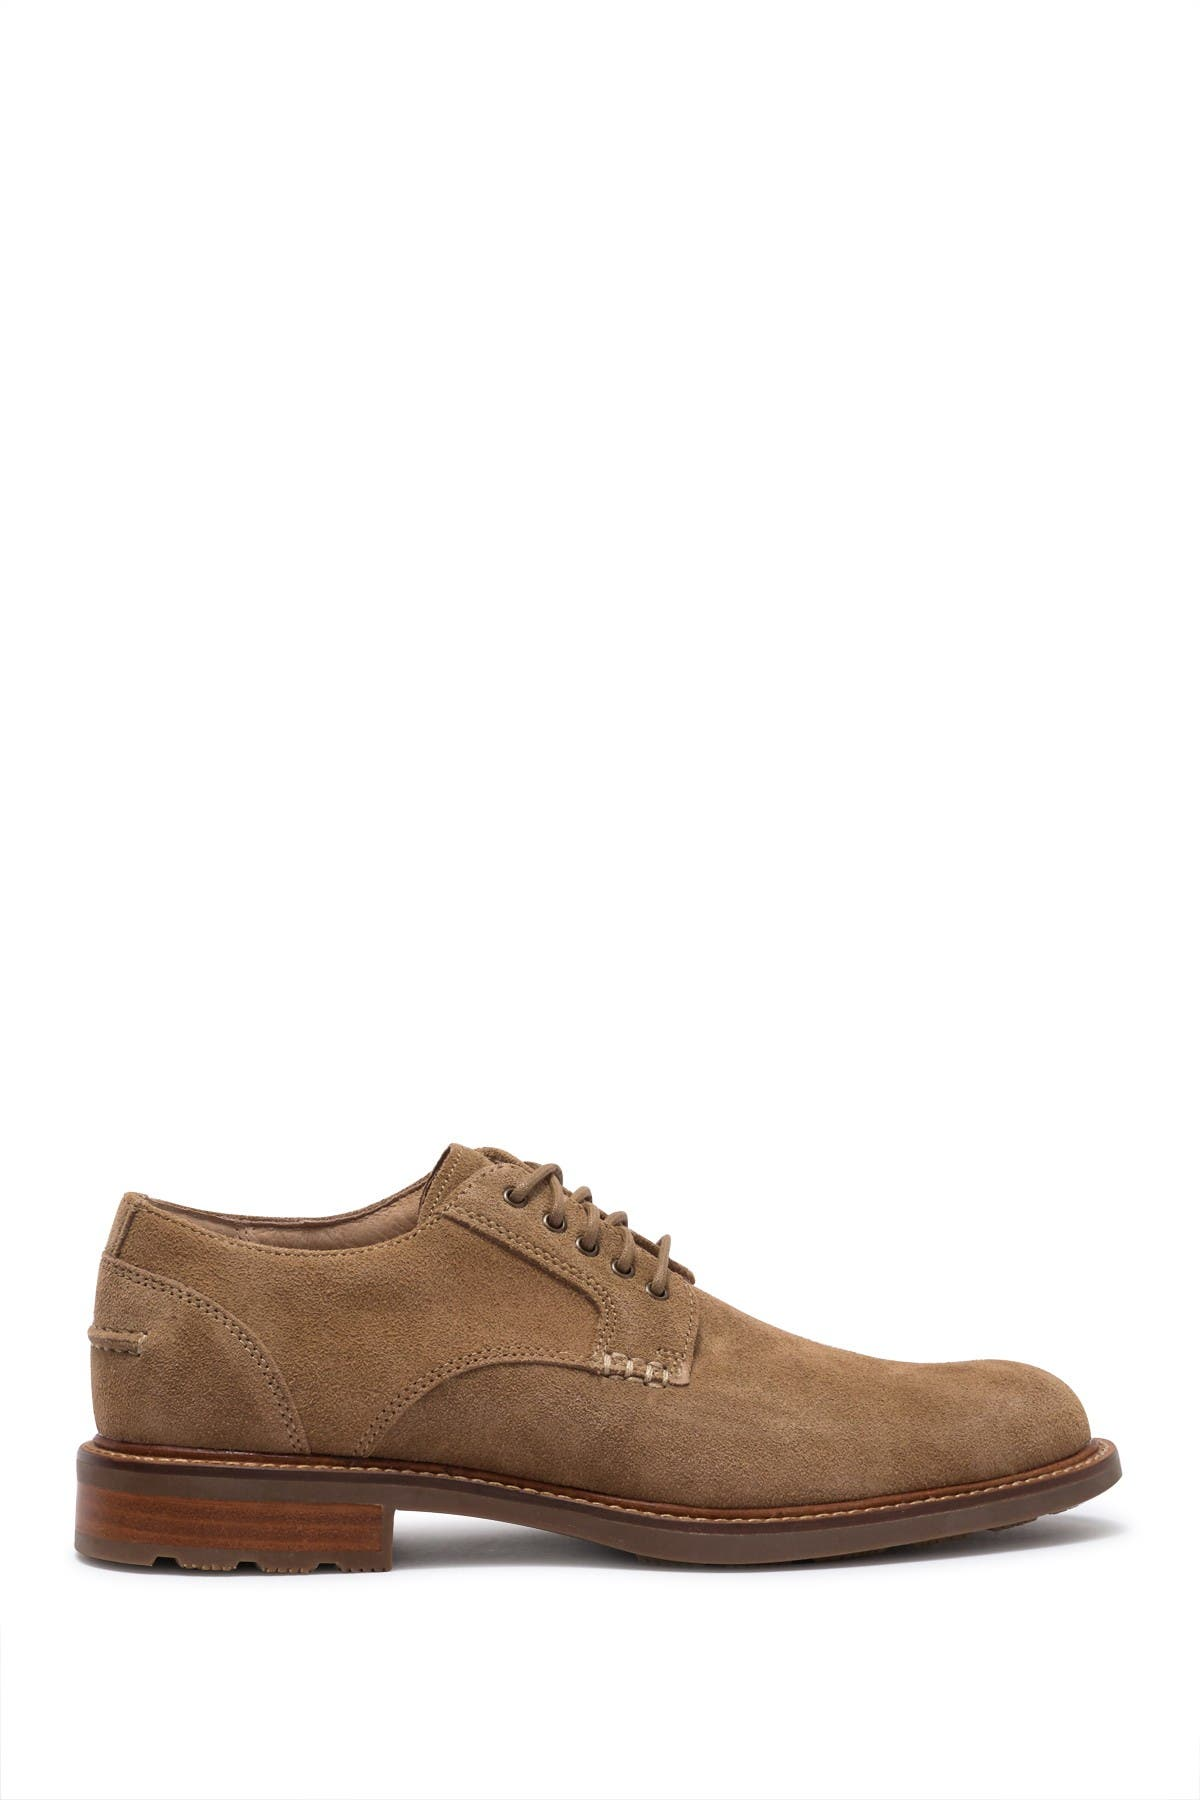 Image of Sperry Annapolis Suede Plain Toe Derby